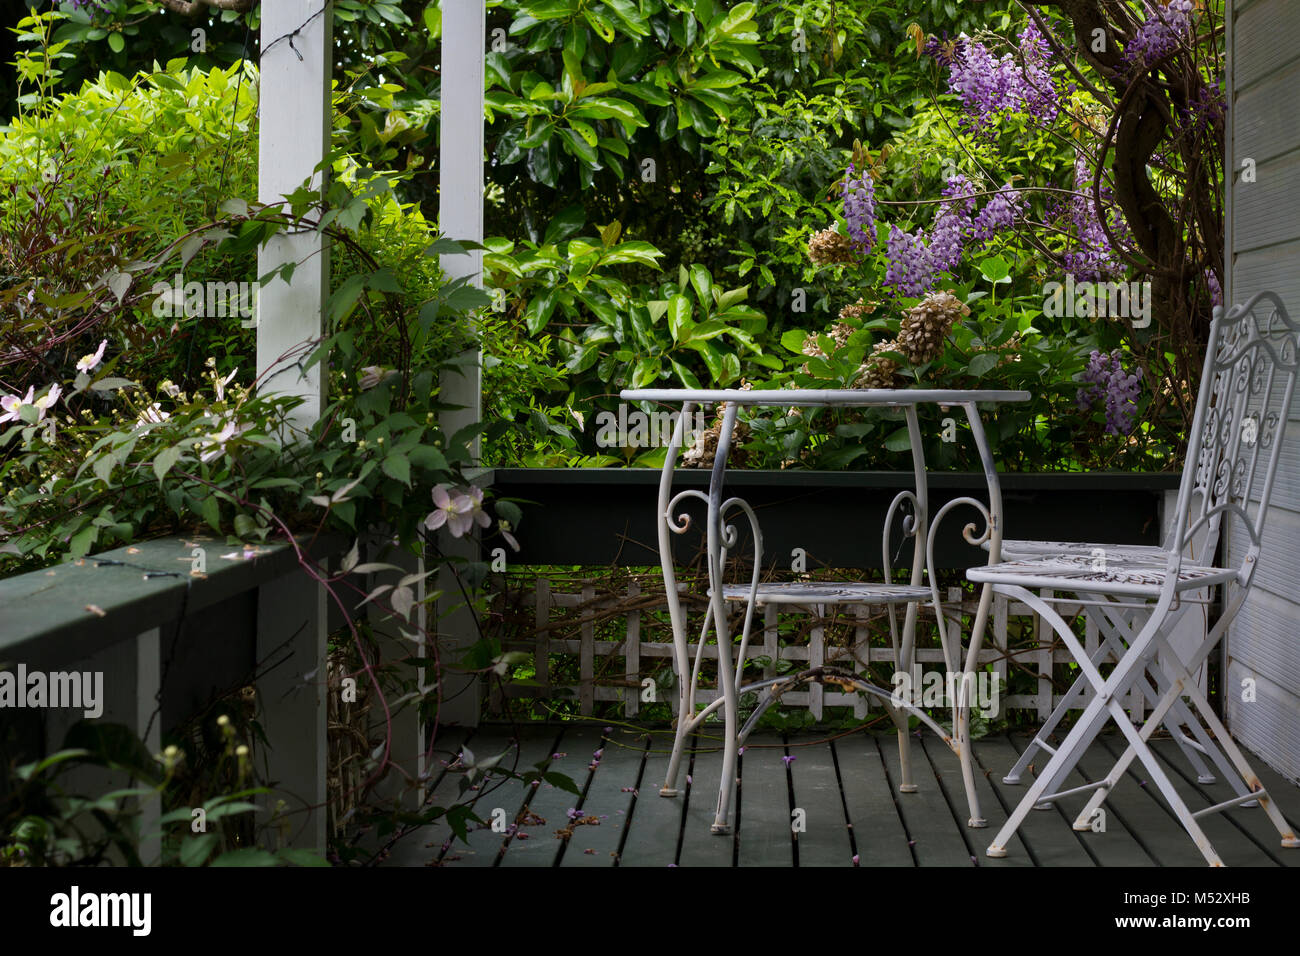 White table and chair on porch and tree with purple flowers stock white table and chair on porch and tree with purple flowers mightylinksfo